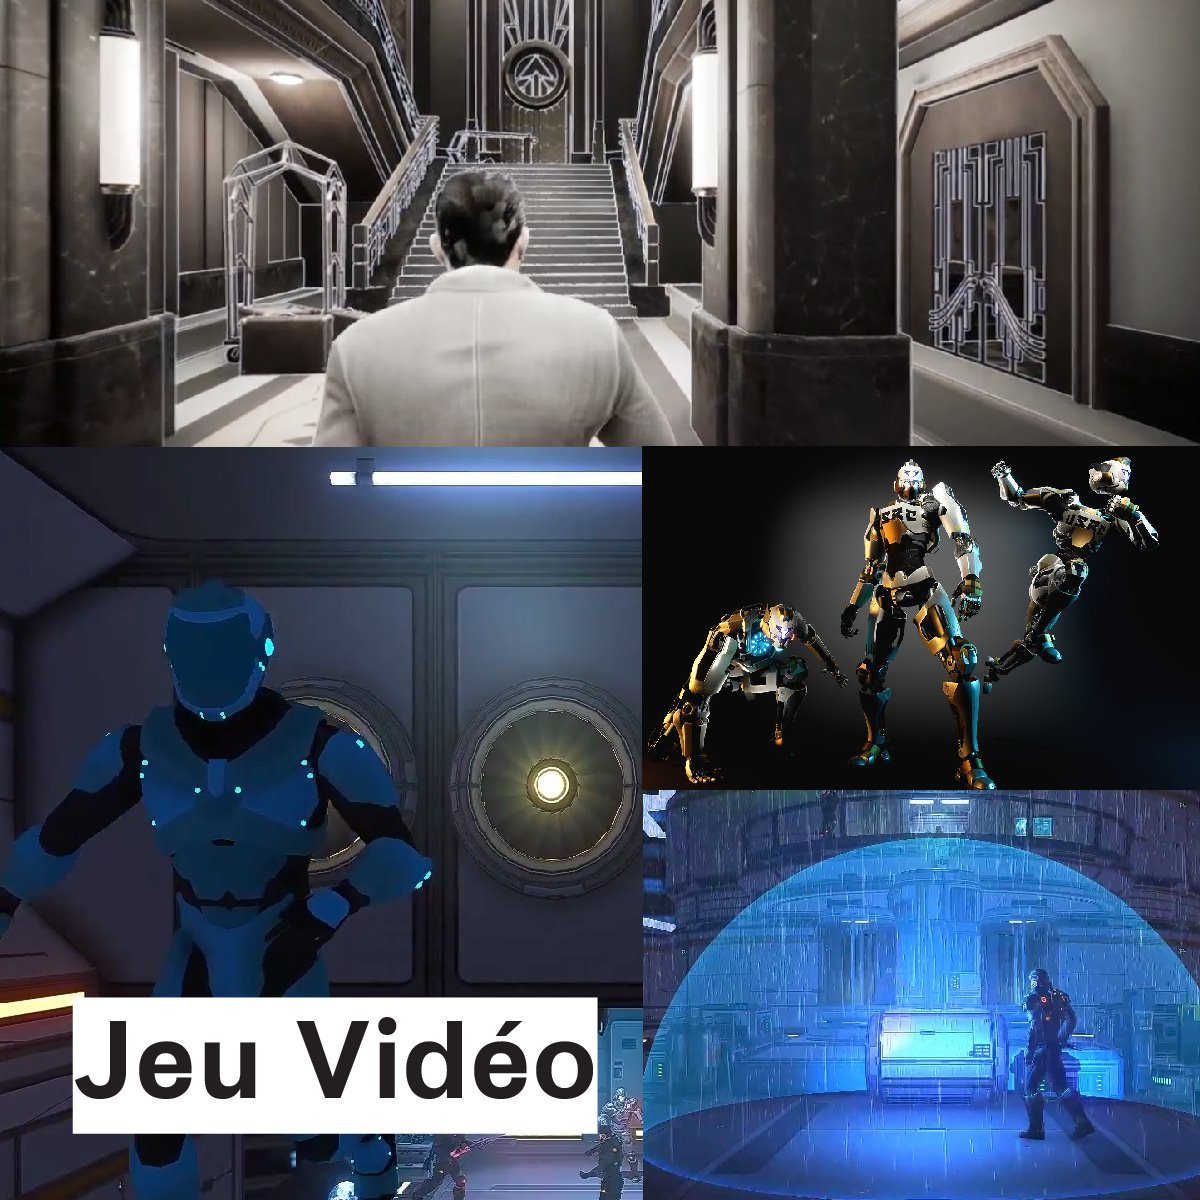 Bellecour Ecole - Jeu Video